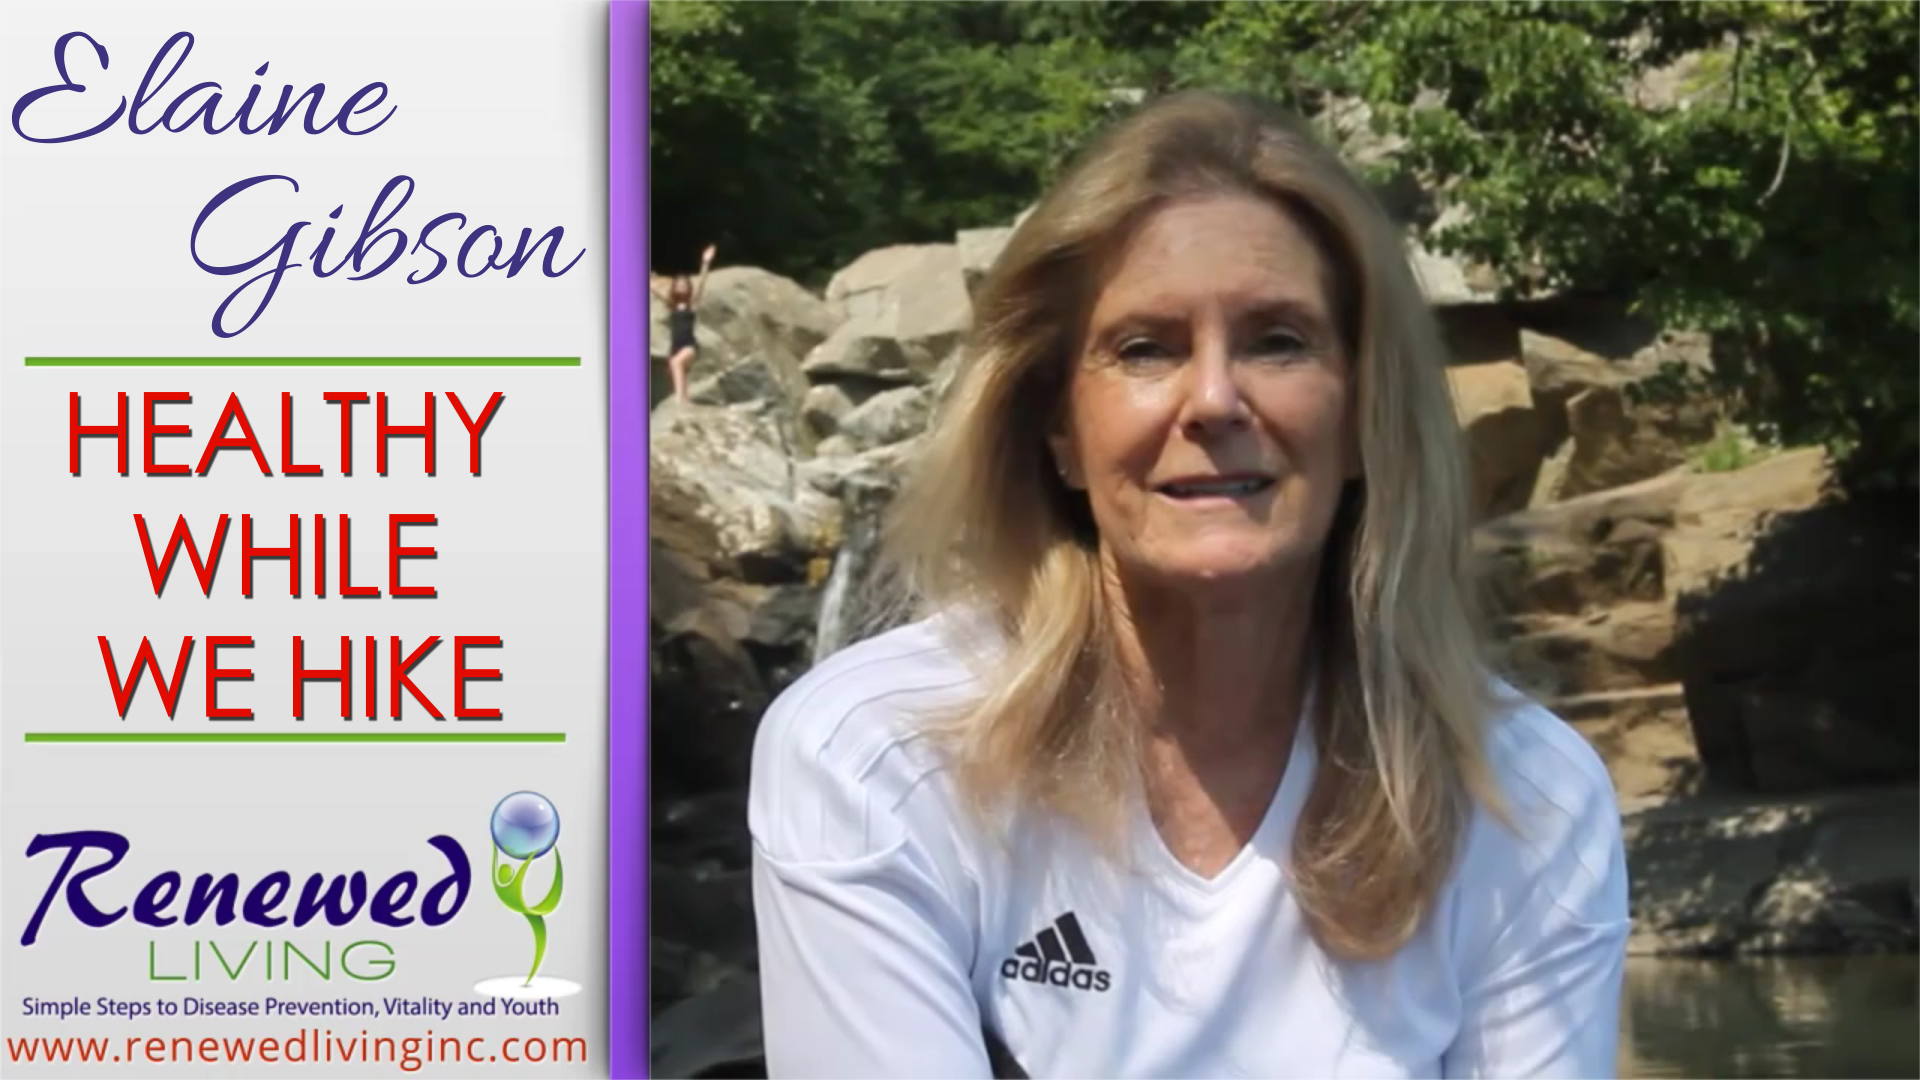 (Video) How to be Healthy While You Enjoy the Outdoors